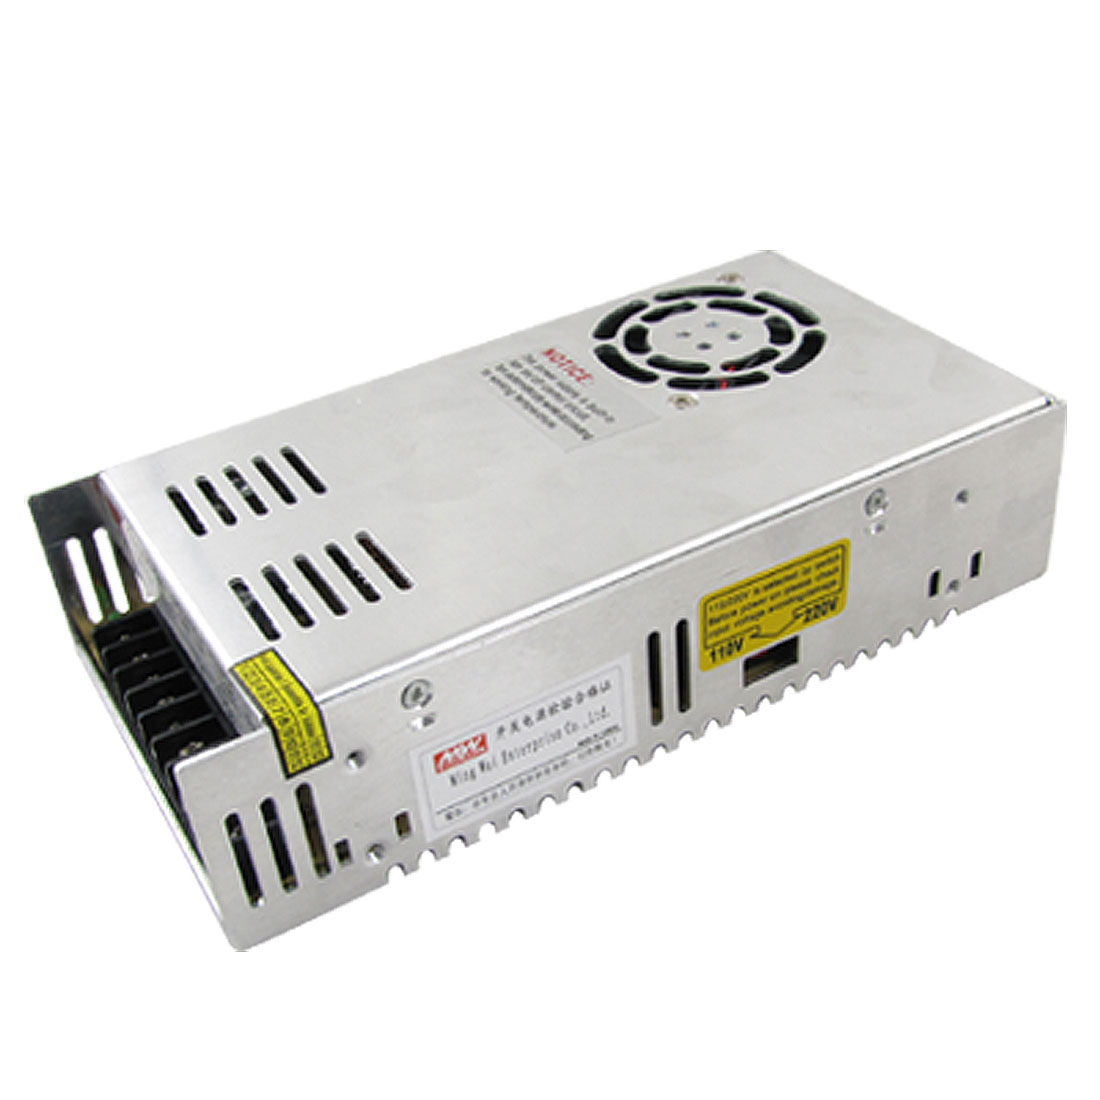 AC 110/220V DC 24V 10A 250W Switching Power Supply Driver for LED Flexable Strip Light